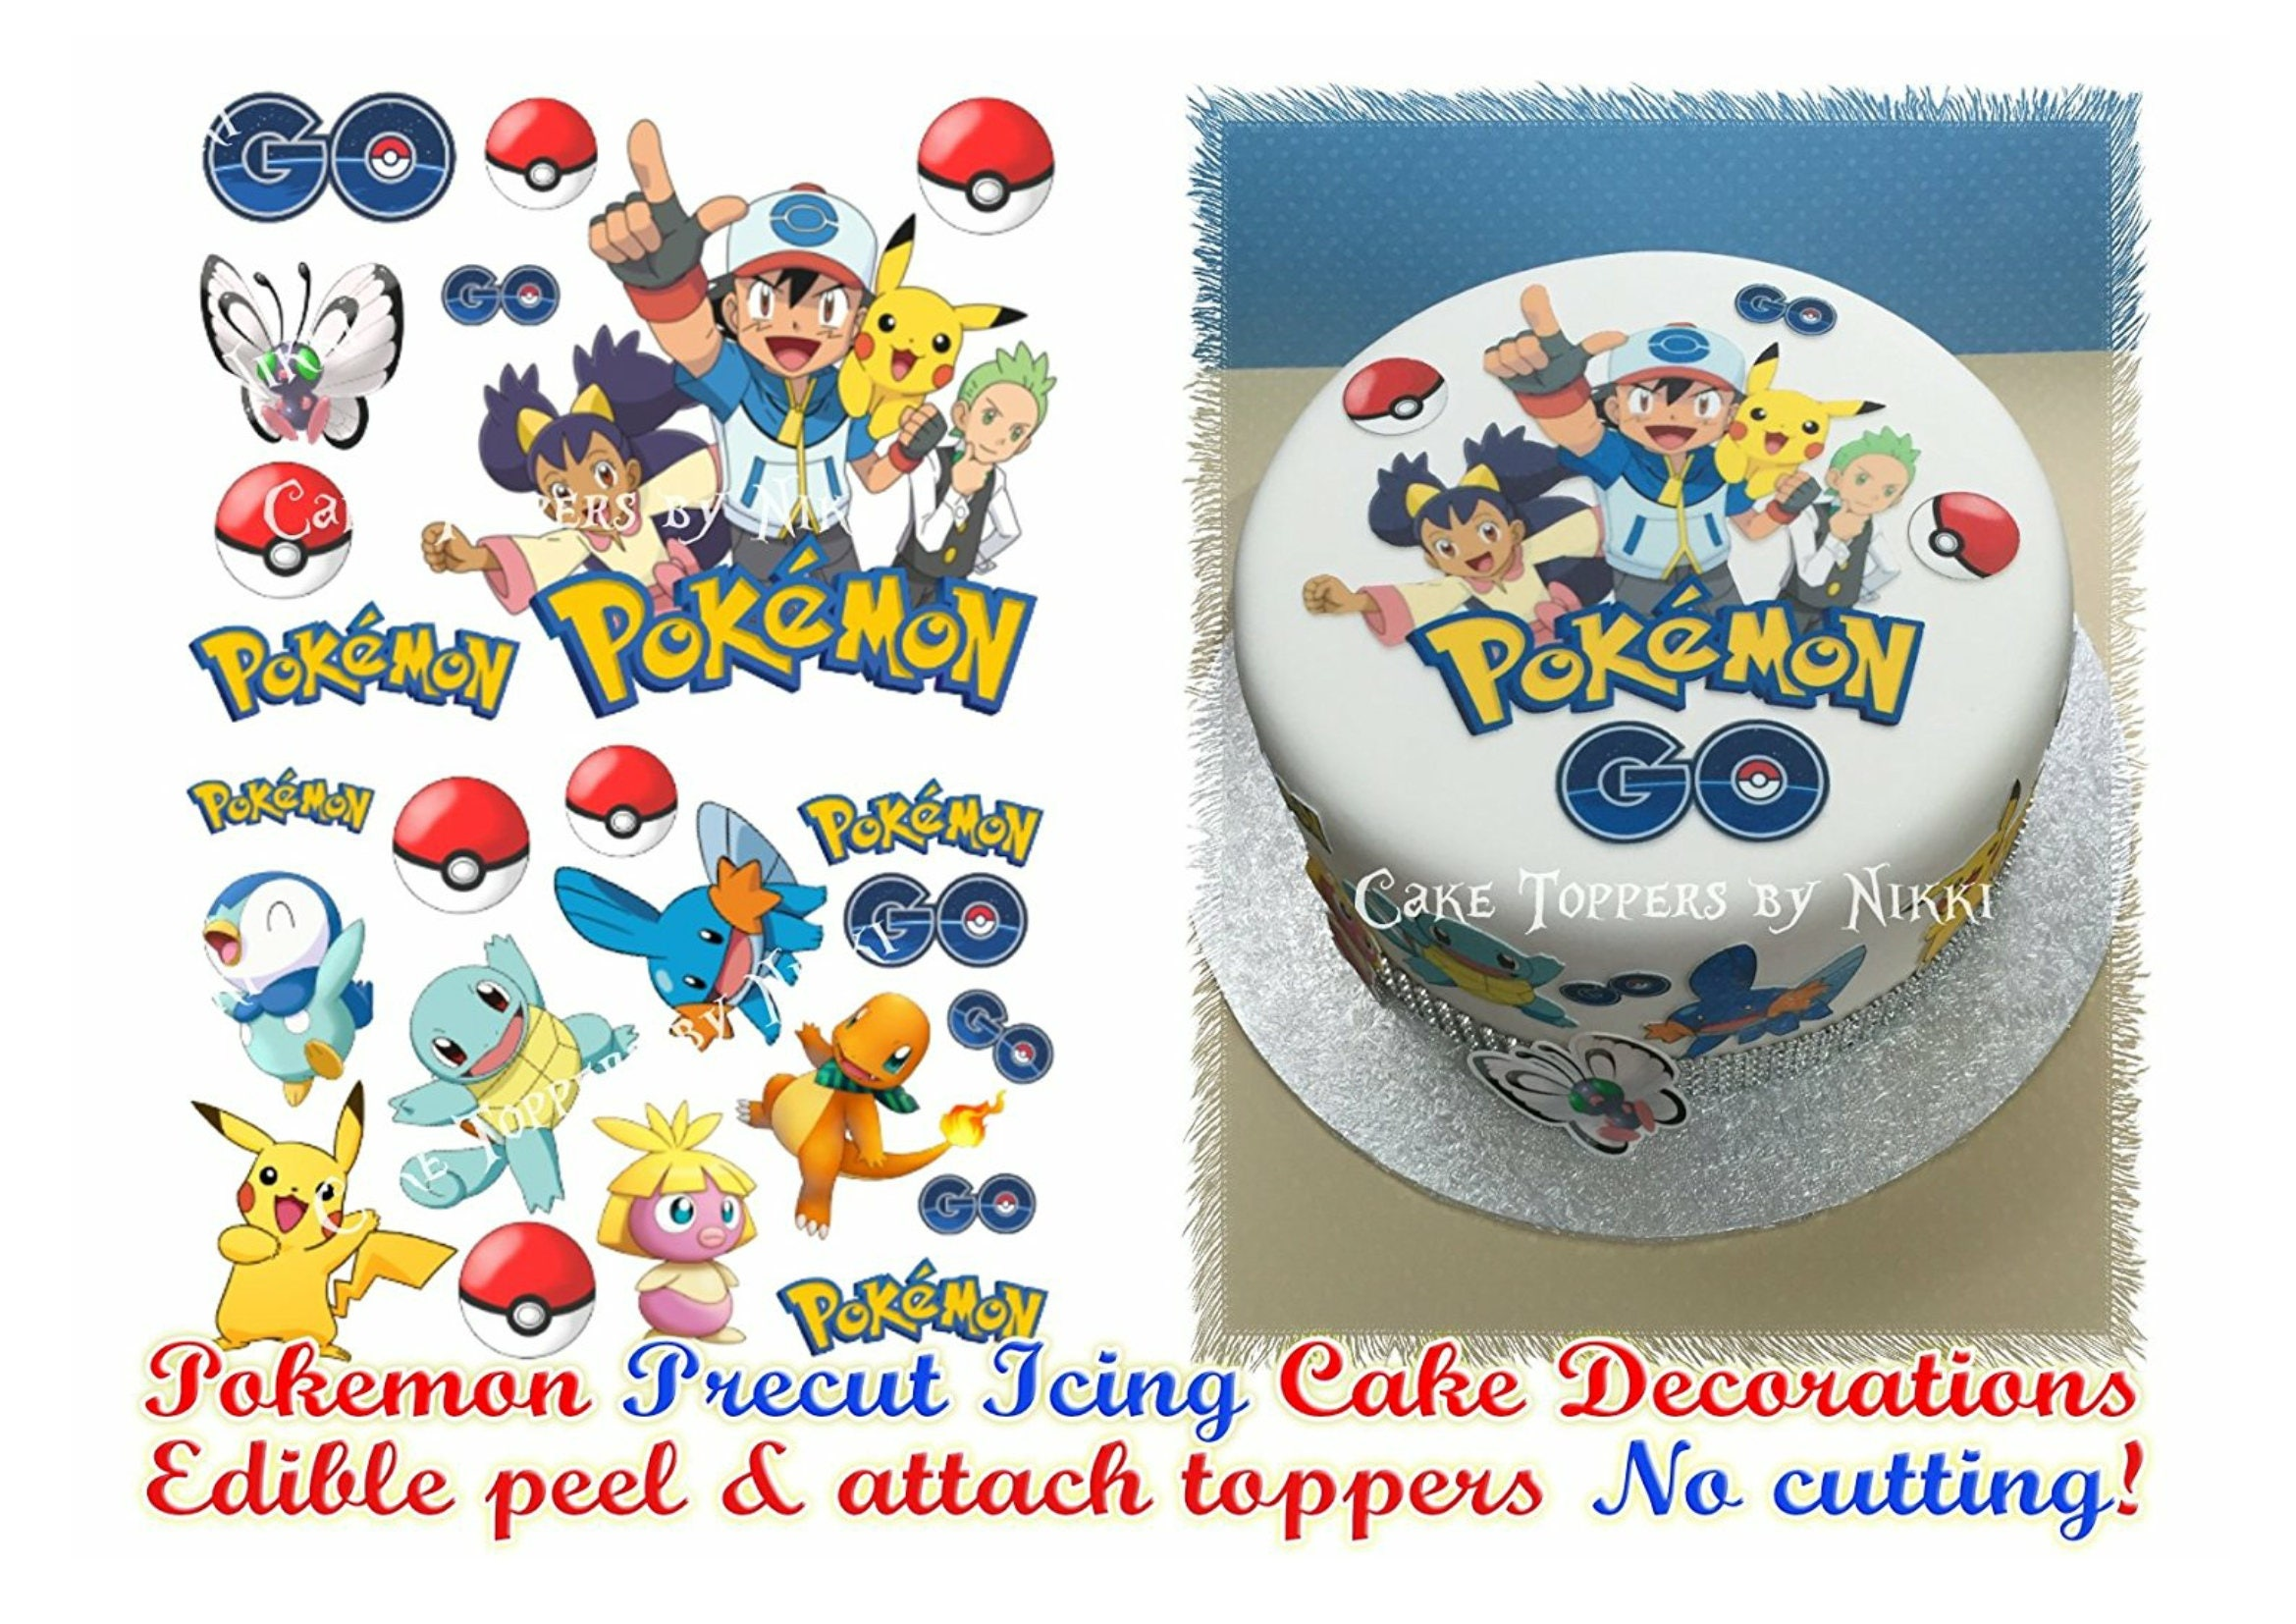 Edible Cake Decorations Pokemon : Edible Icing POKEMON GO Cake Decorations PRECUT No Cutting